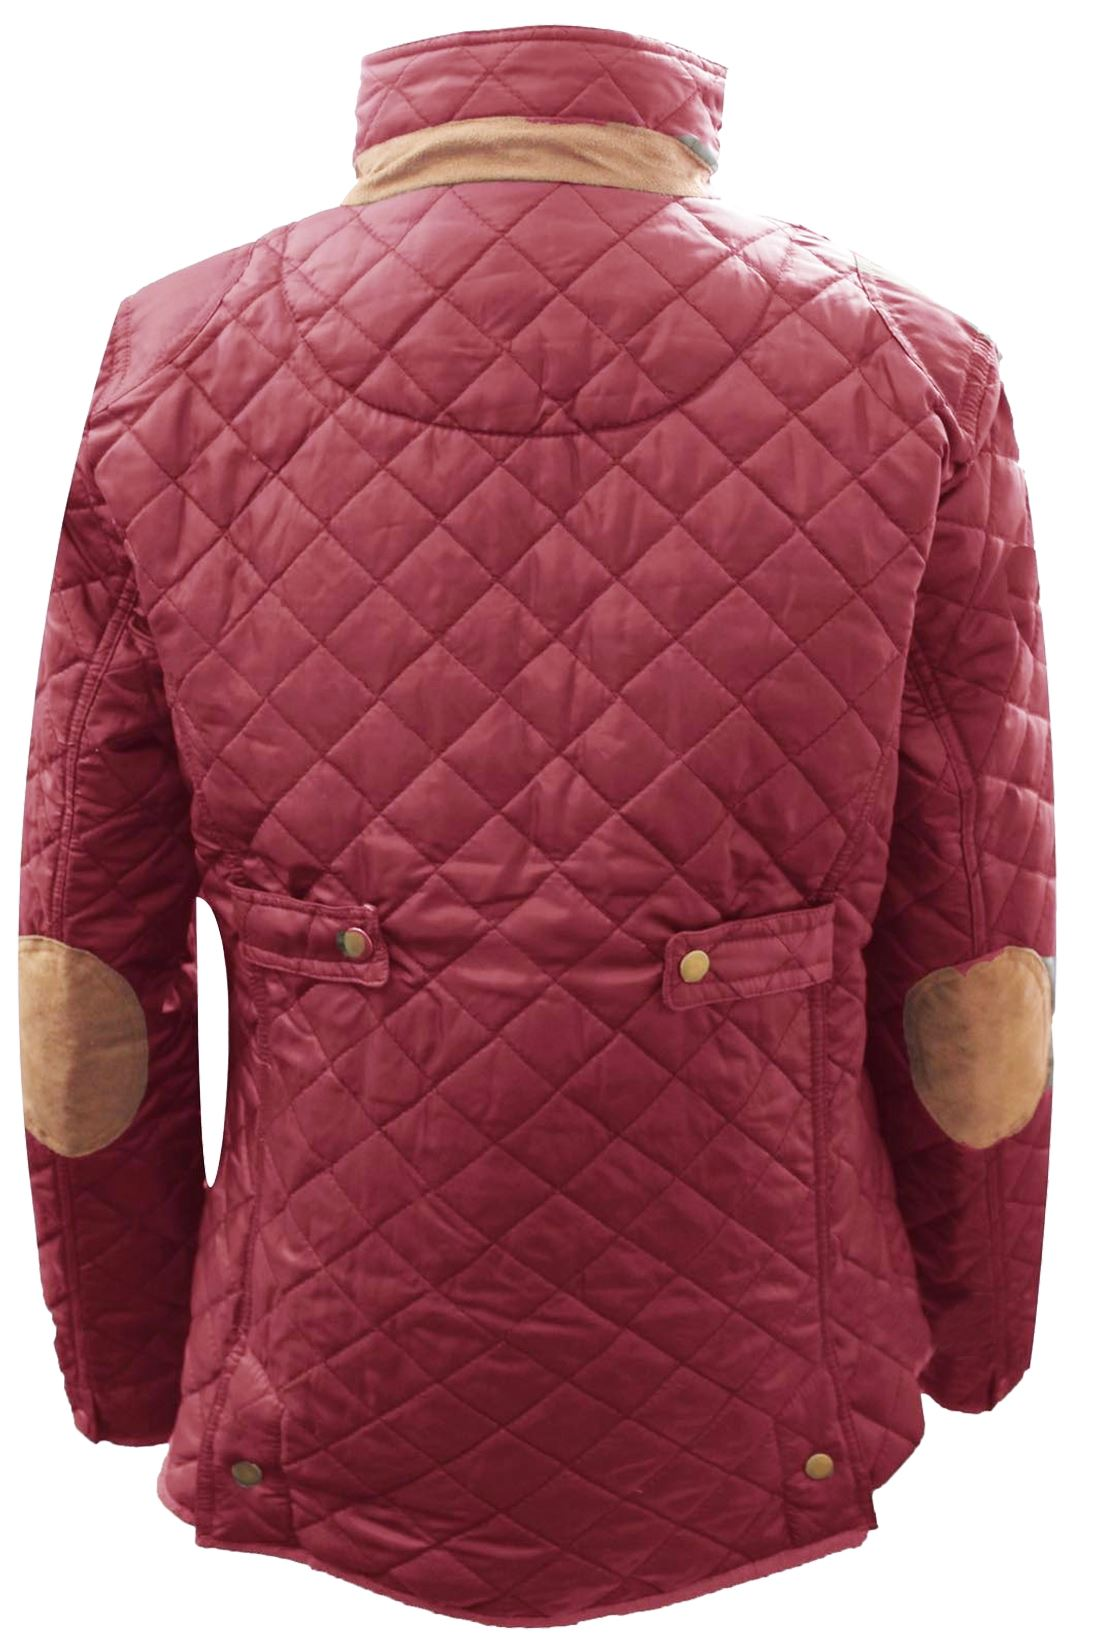 Womens Ladies Quilted Button Thick Warm Winter Elbow Patches Funnel Neck Jacket